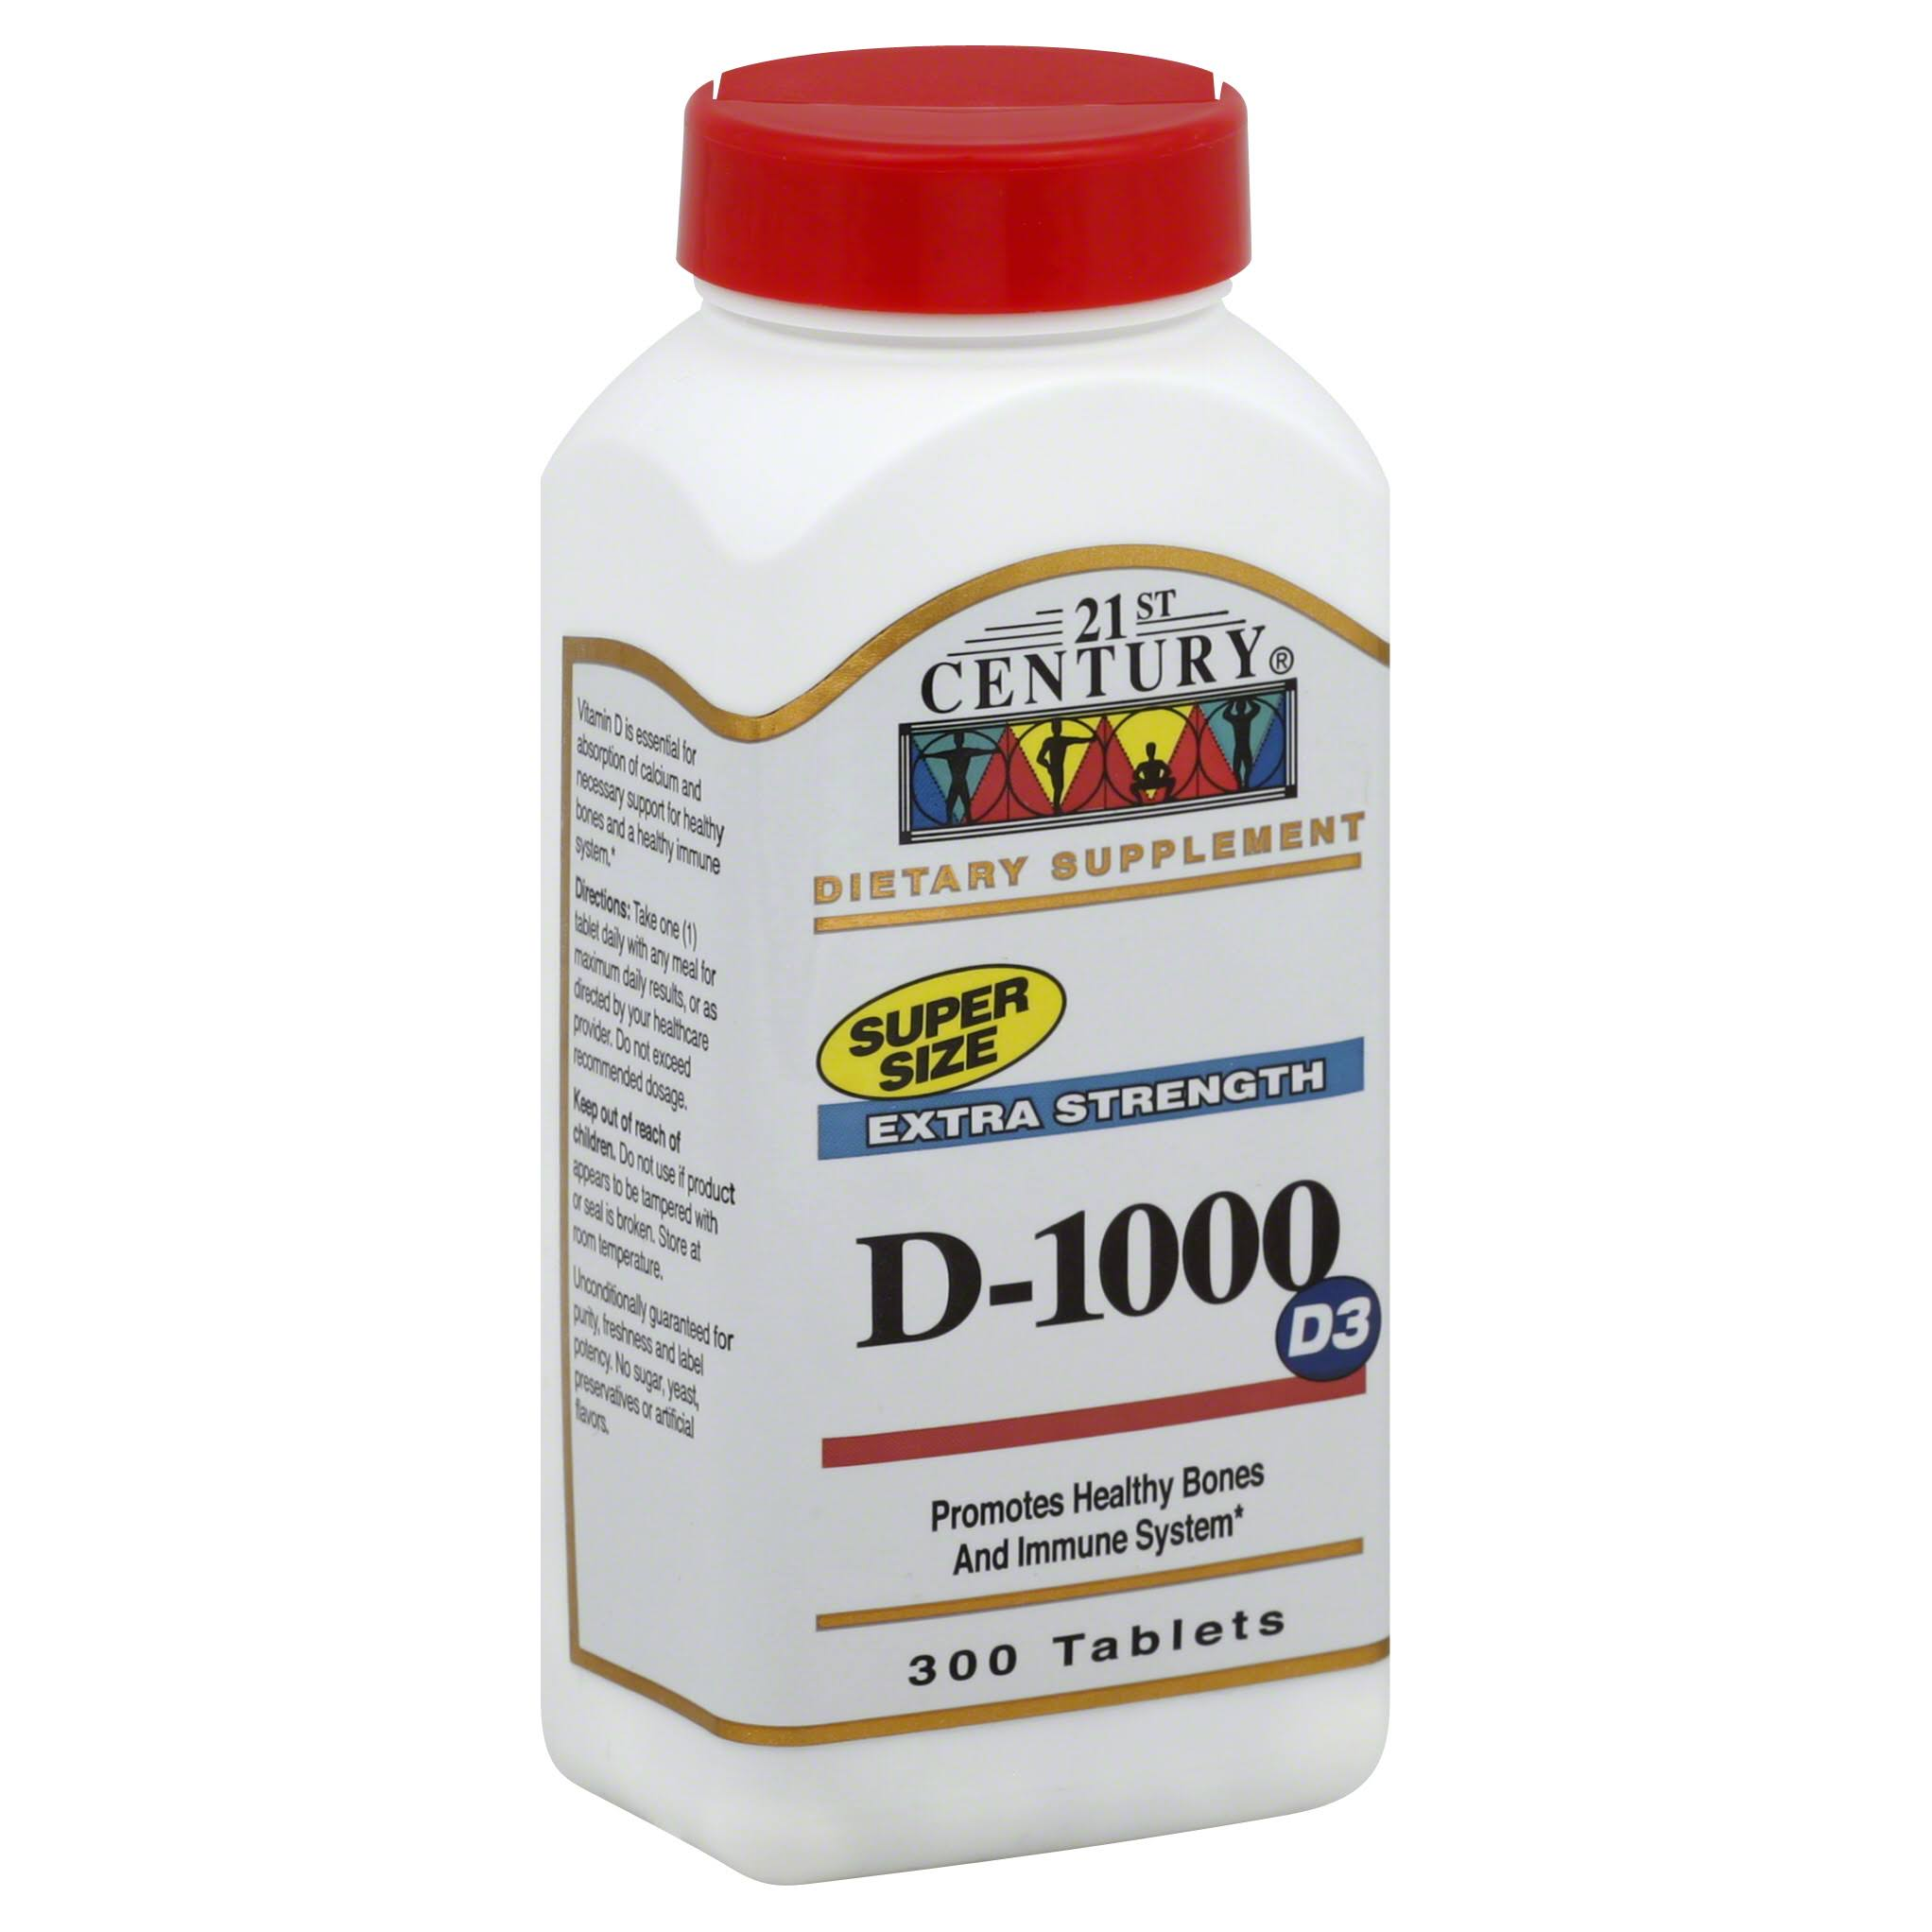 21st Century D-1000 IU Vitamin Supplement - 300 Tablets